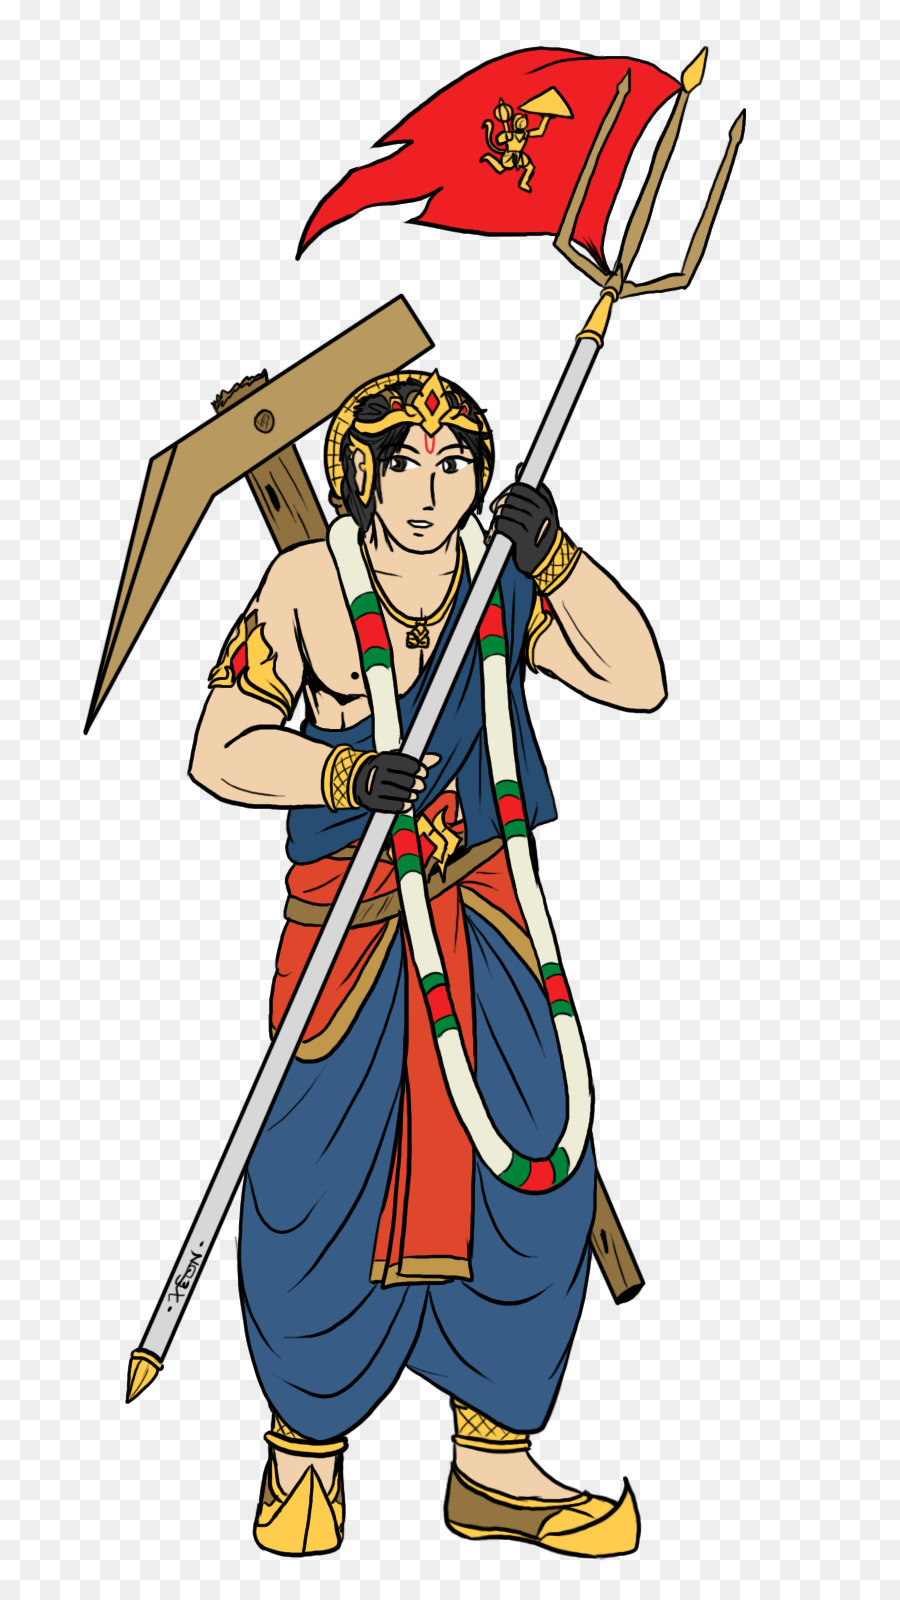 Balaram clipart png transparent download Cartoon Cartoon clipart - Krishna, Clothing, Cartoon, transparent ... png transparent download